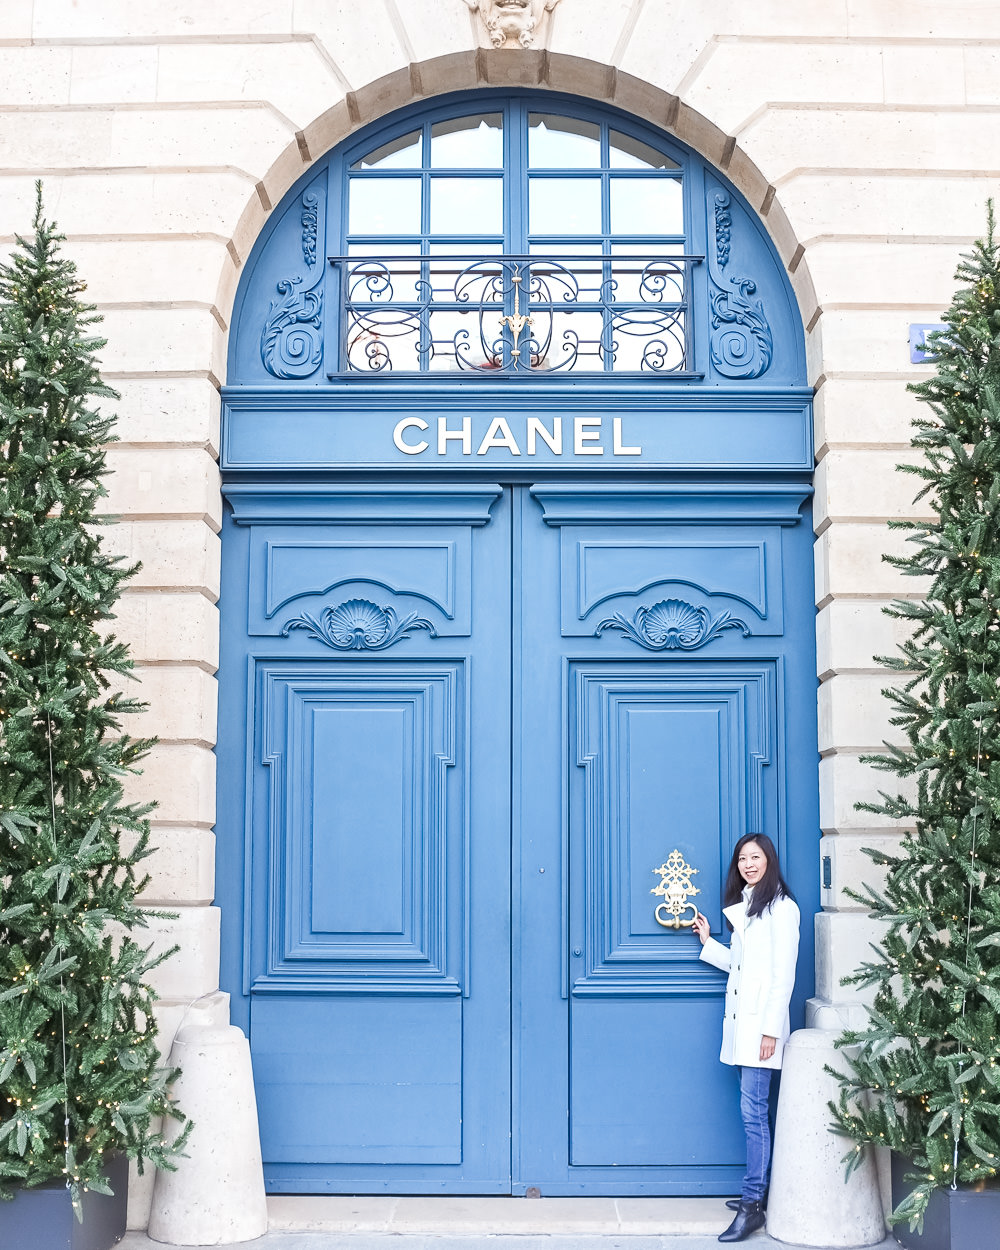 The 5 Best Things About Christmas in Paris